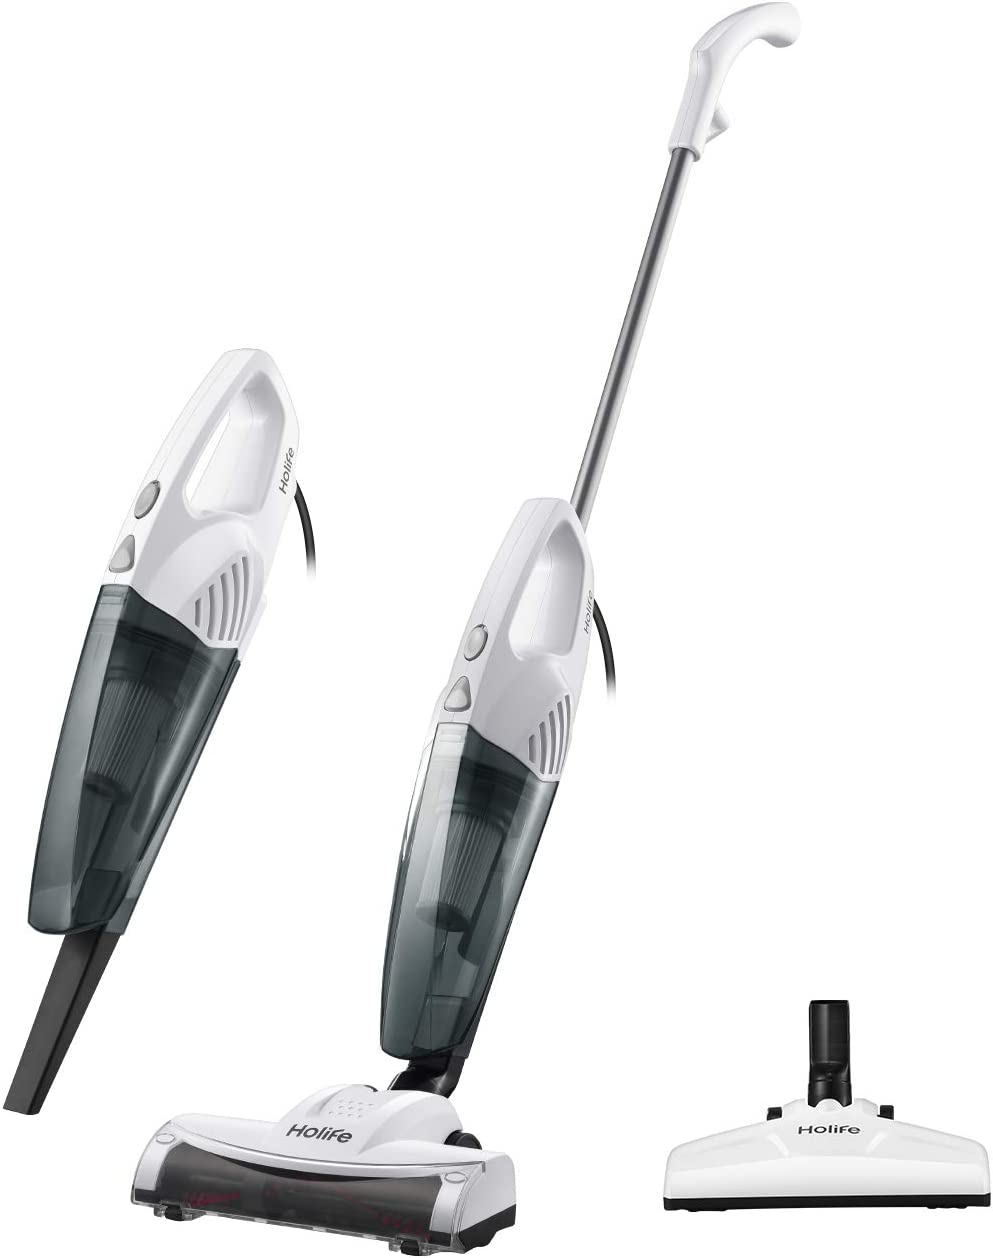 Holife HM408 Stick Vacuum Cleaner 15Kpa Powerful Suction, 2